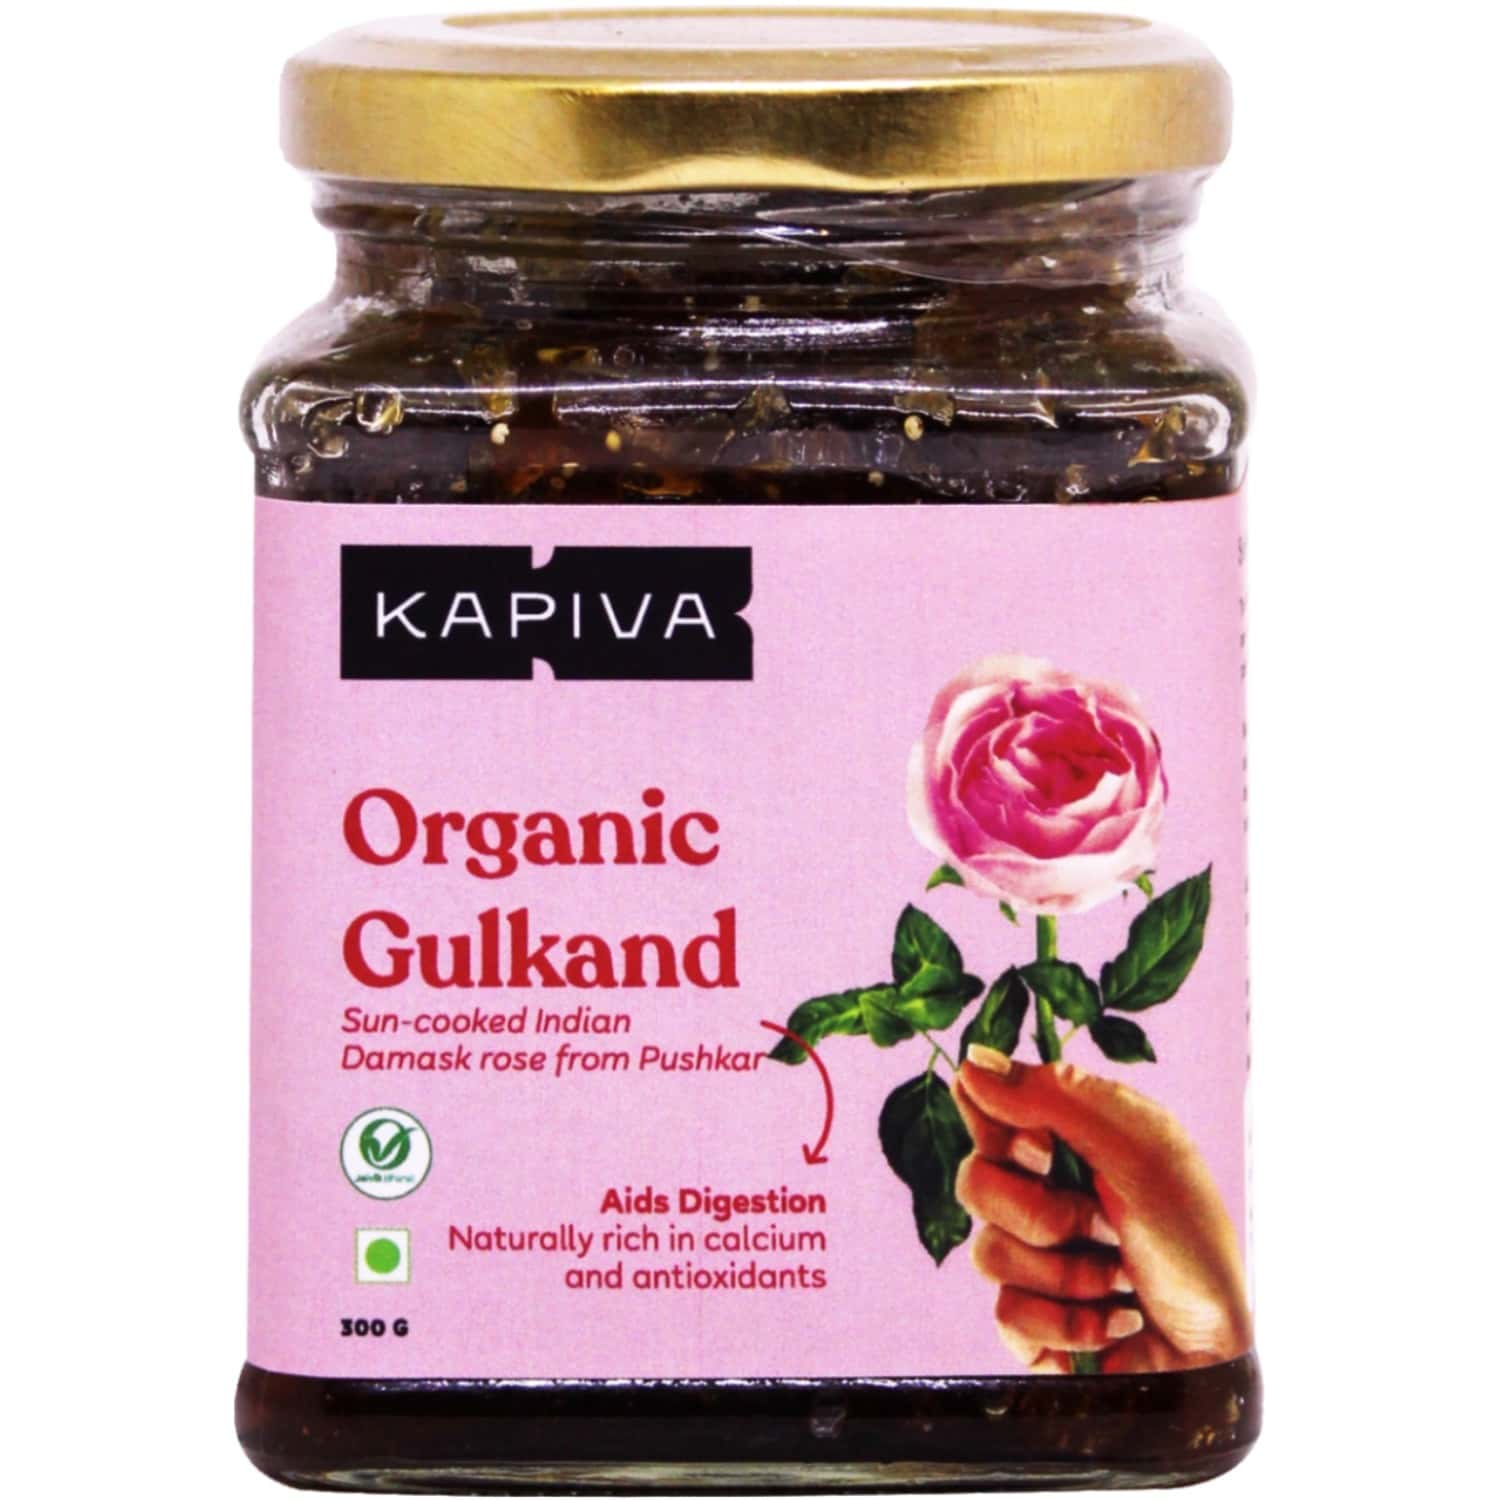 Kapiva Organic Gulkand - Made From Sun Cooked Damask Rose - Natural Rich In Calcium And Antioxidants - Helps In Digestion - 300g